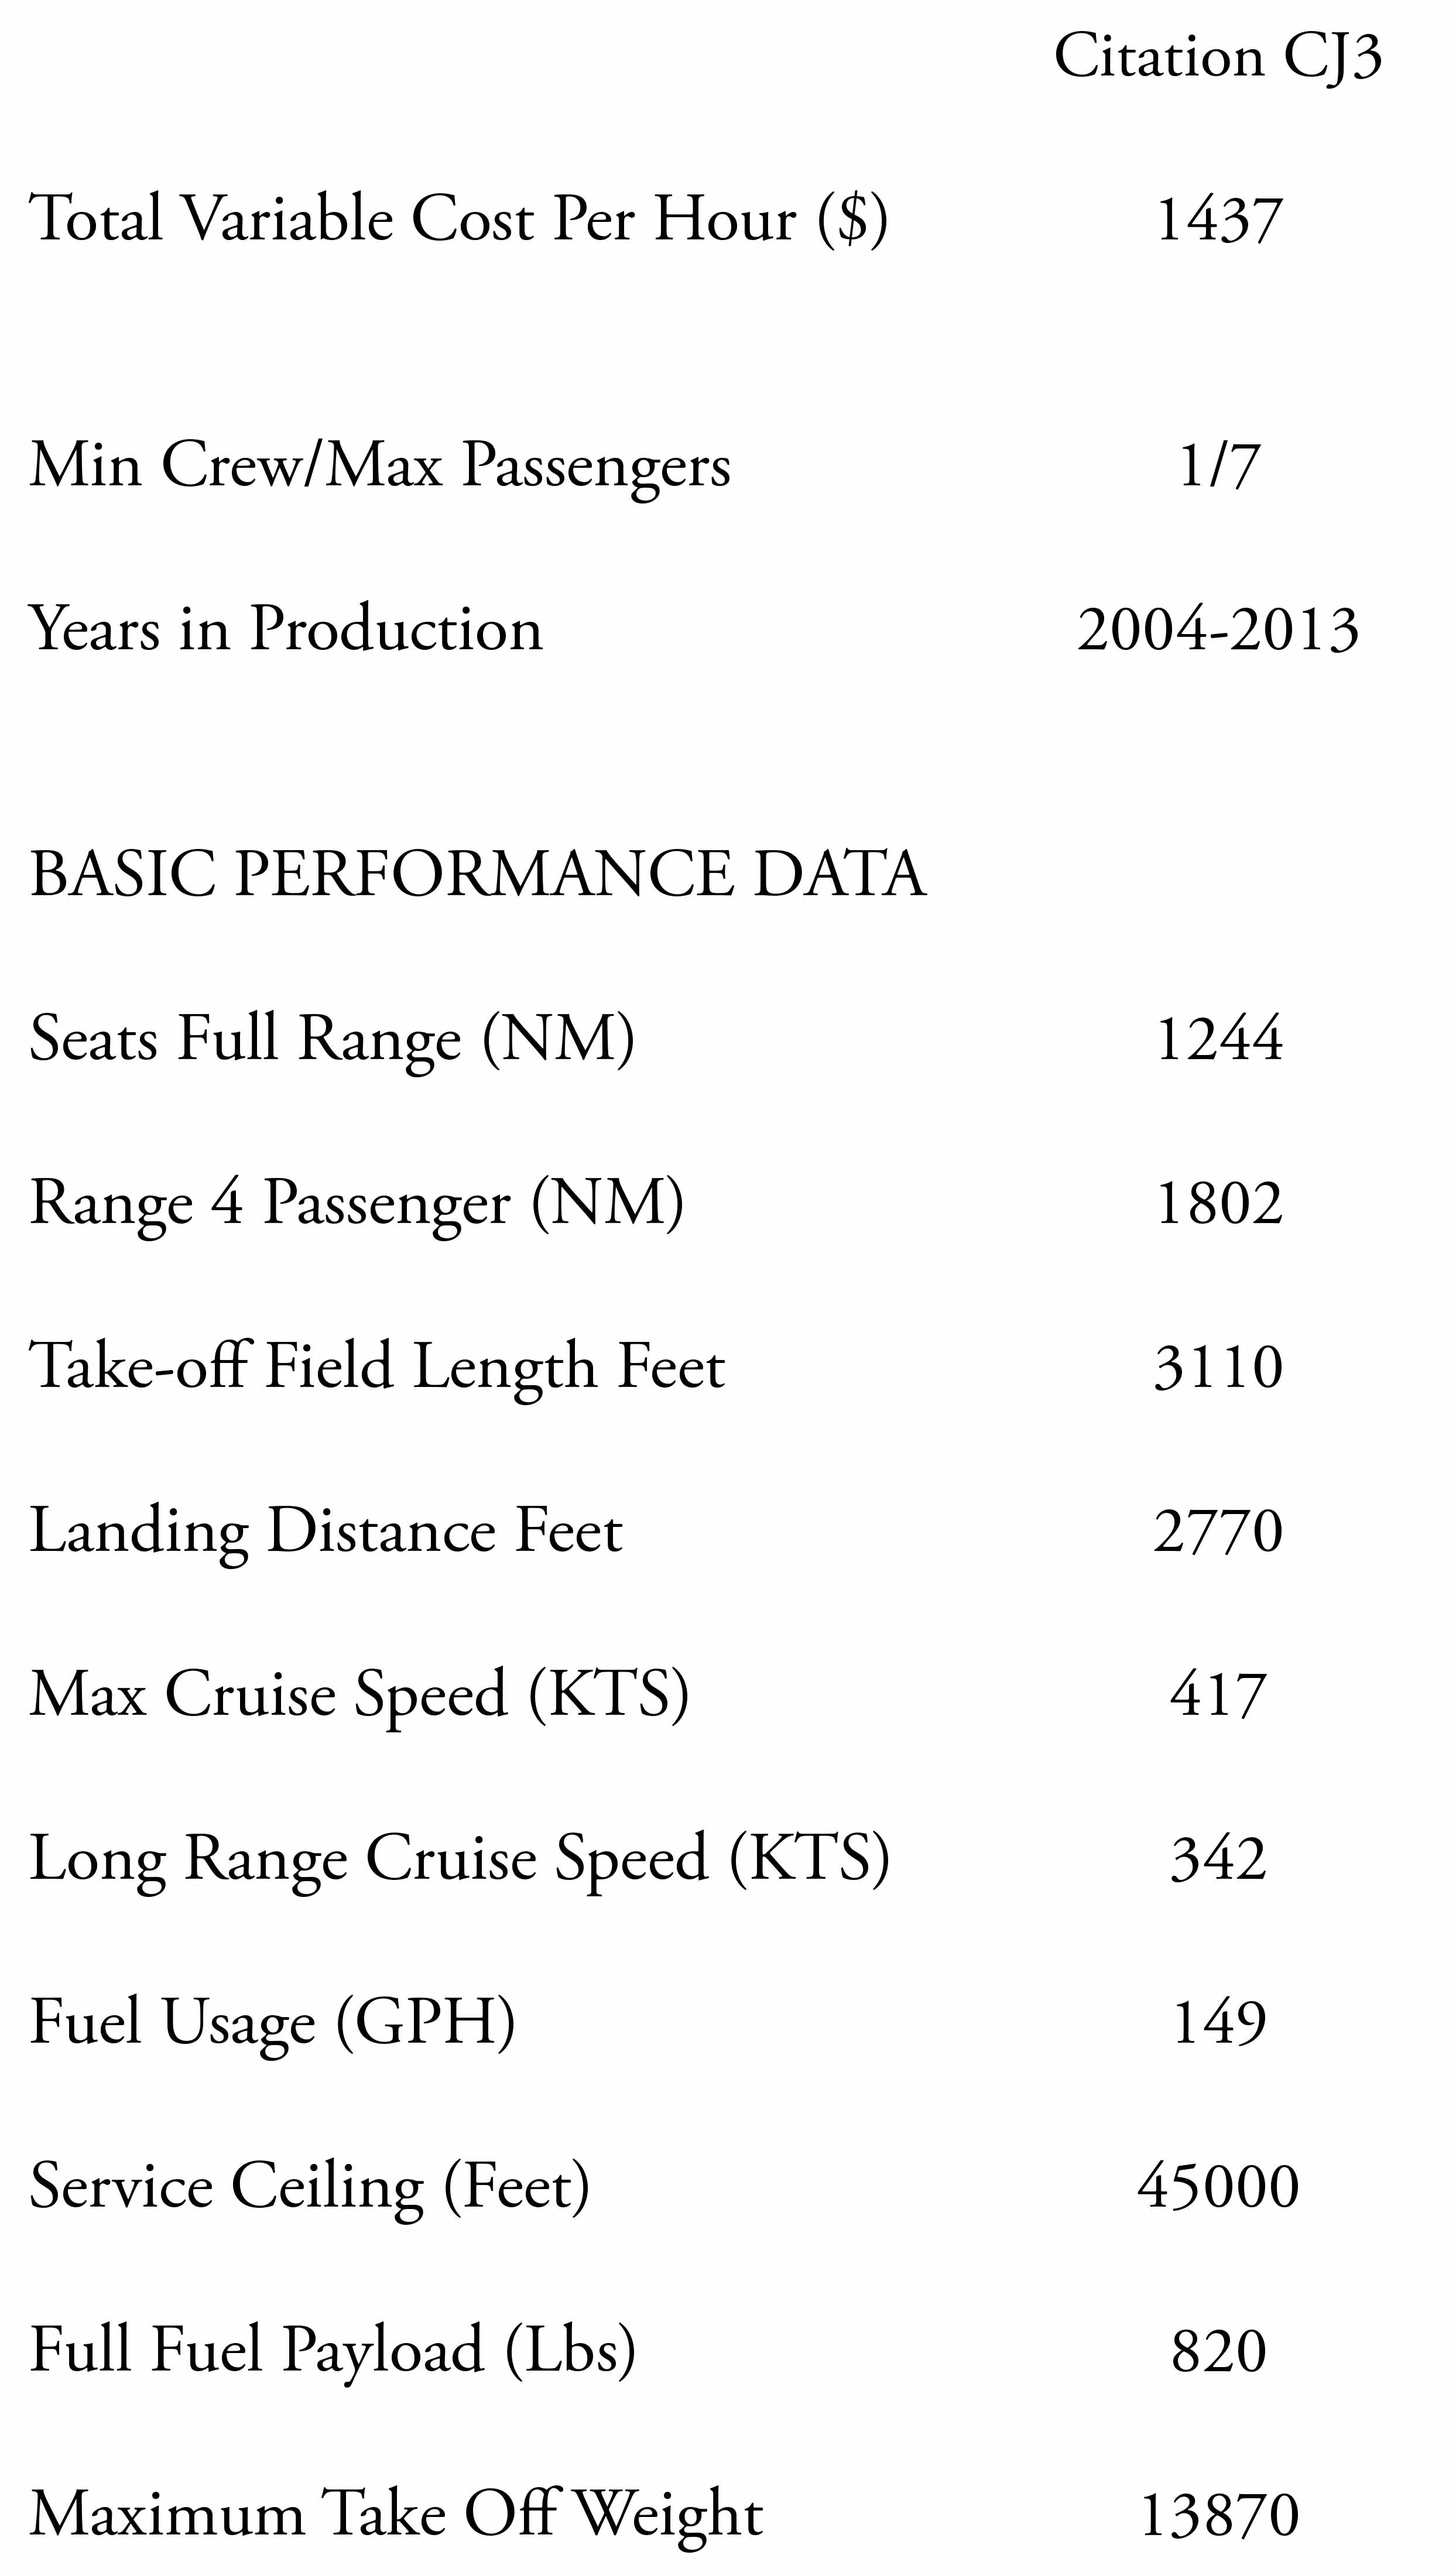 Citation CJ3 Performance specs compared to the newer CJ3+ . Ownership costs, variable costs, fuel usage, ect.